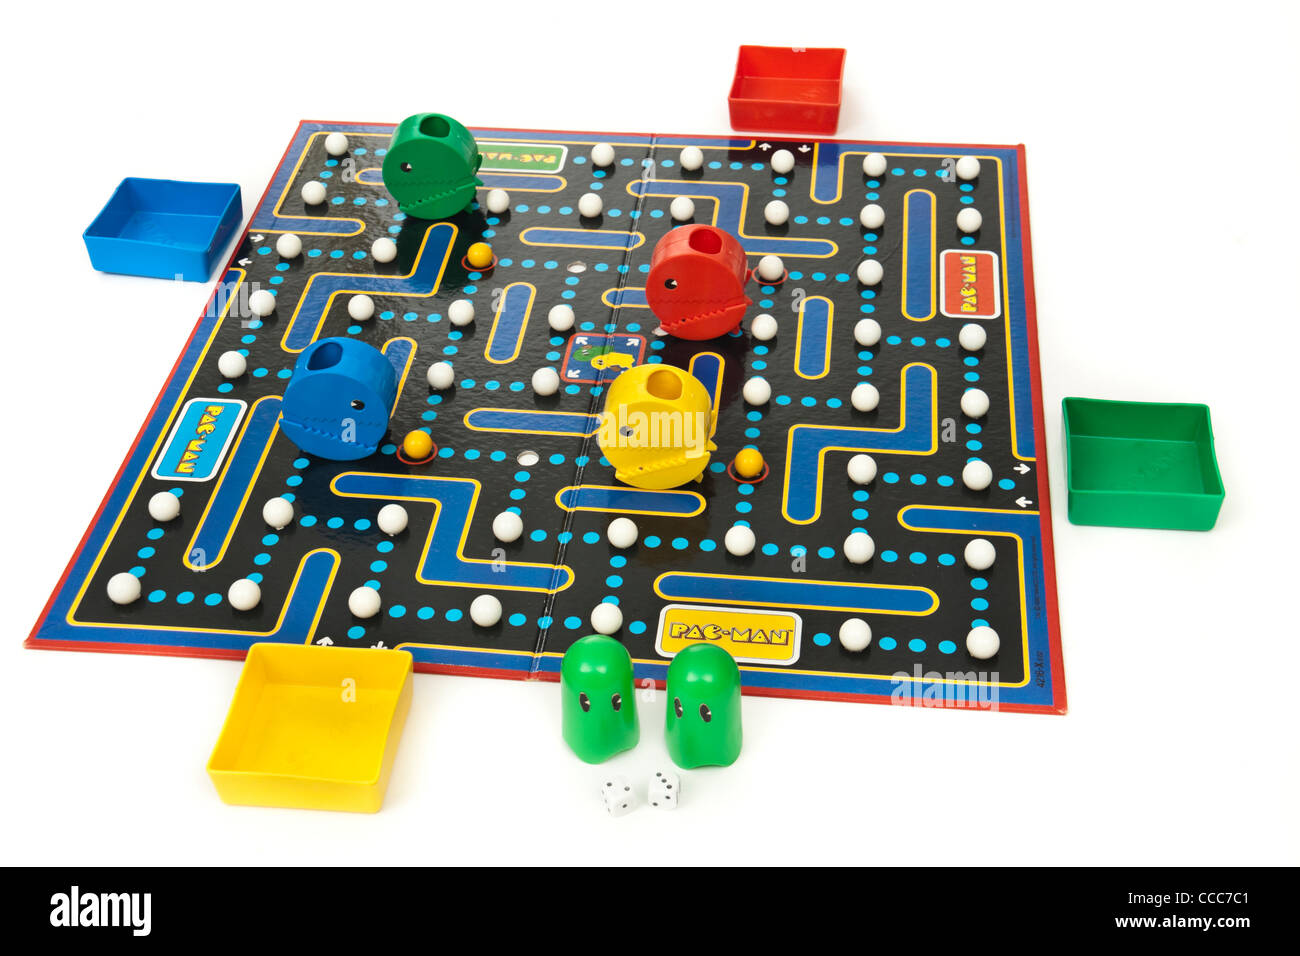 Vintage 1980's Pac-Man board game version of the classic arcade game by NAMCO - Stock Image